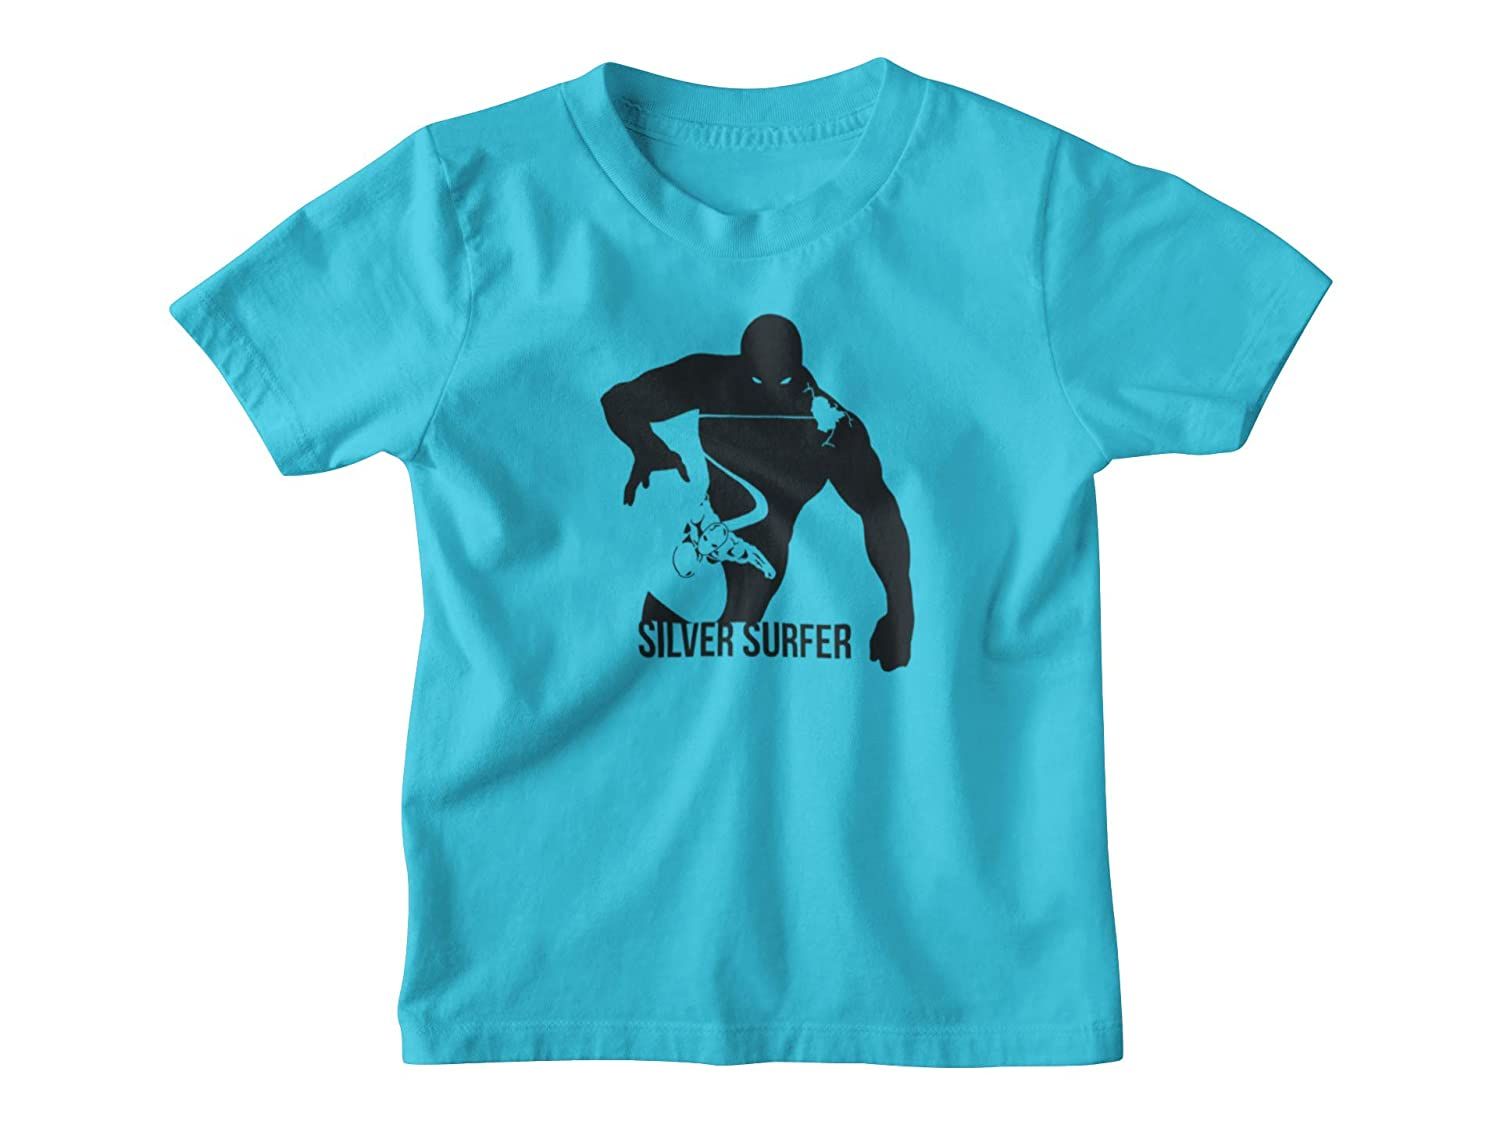 Amazon Com Silver Surfer Shirt Silver Surfer Kids T Shirt In A Variety Of Colors Silver Surfer Youth Shirt Handmade